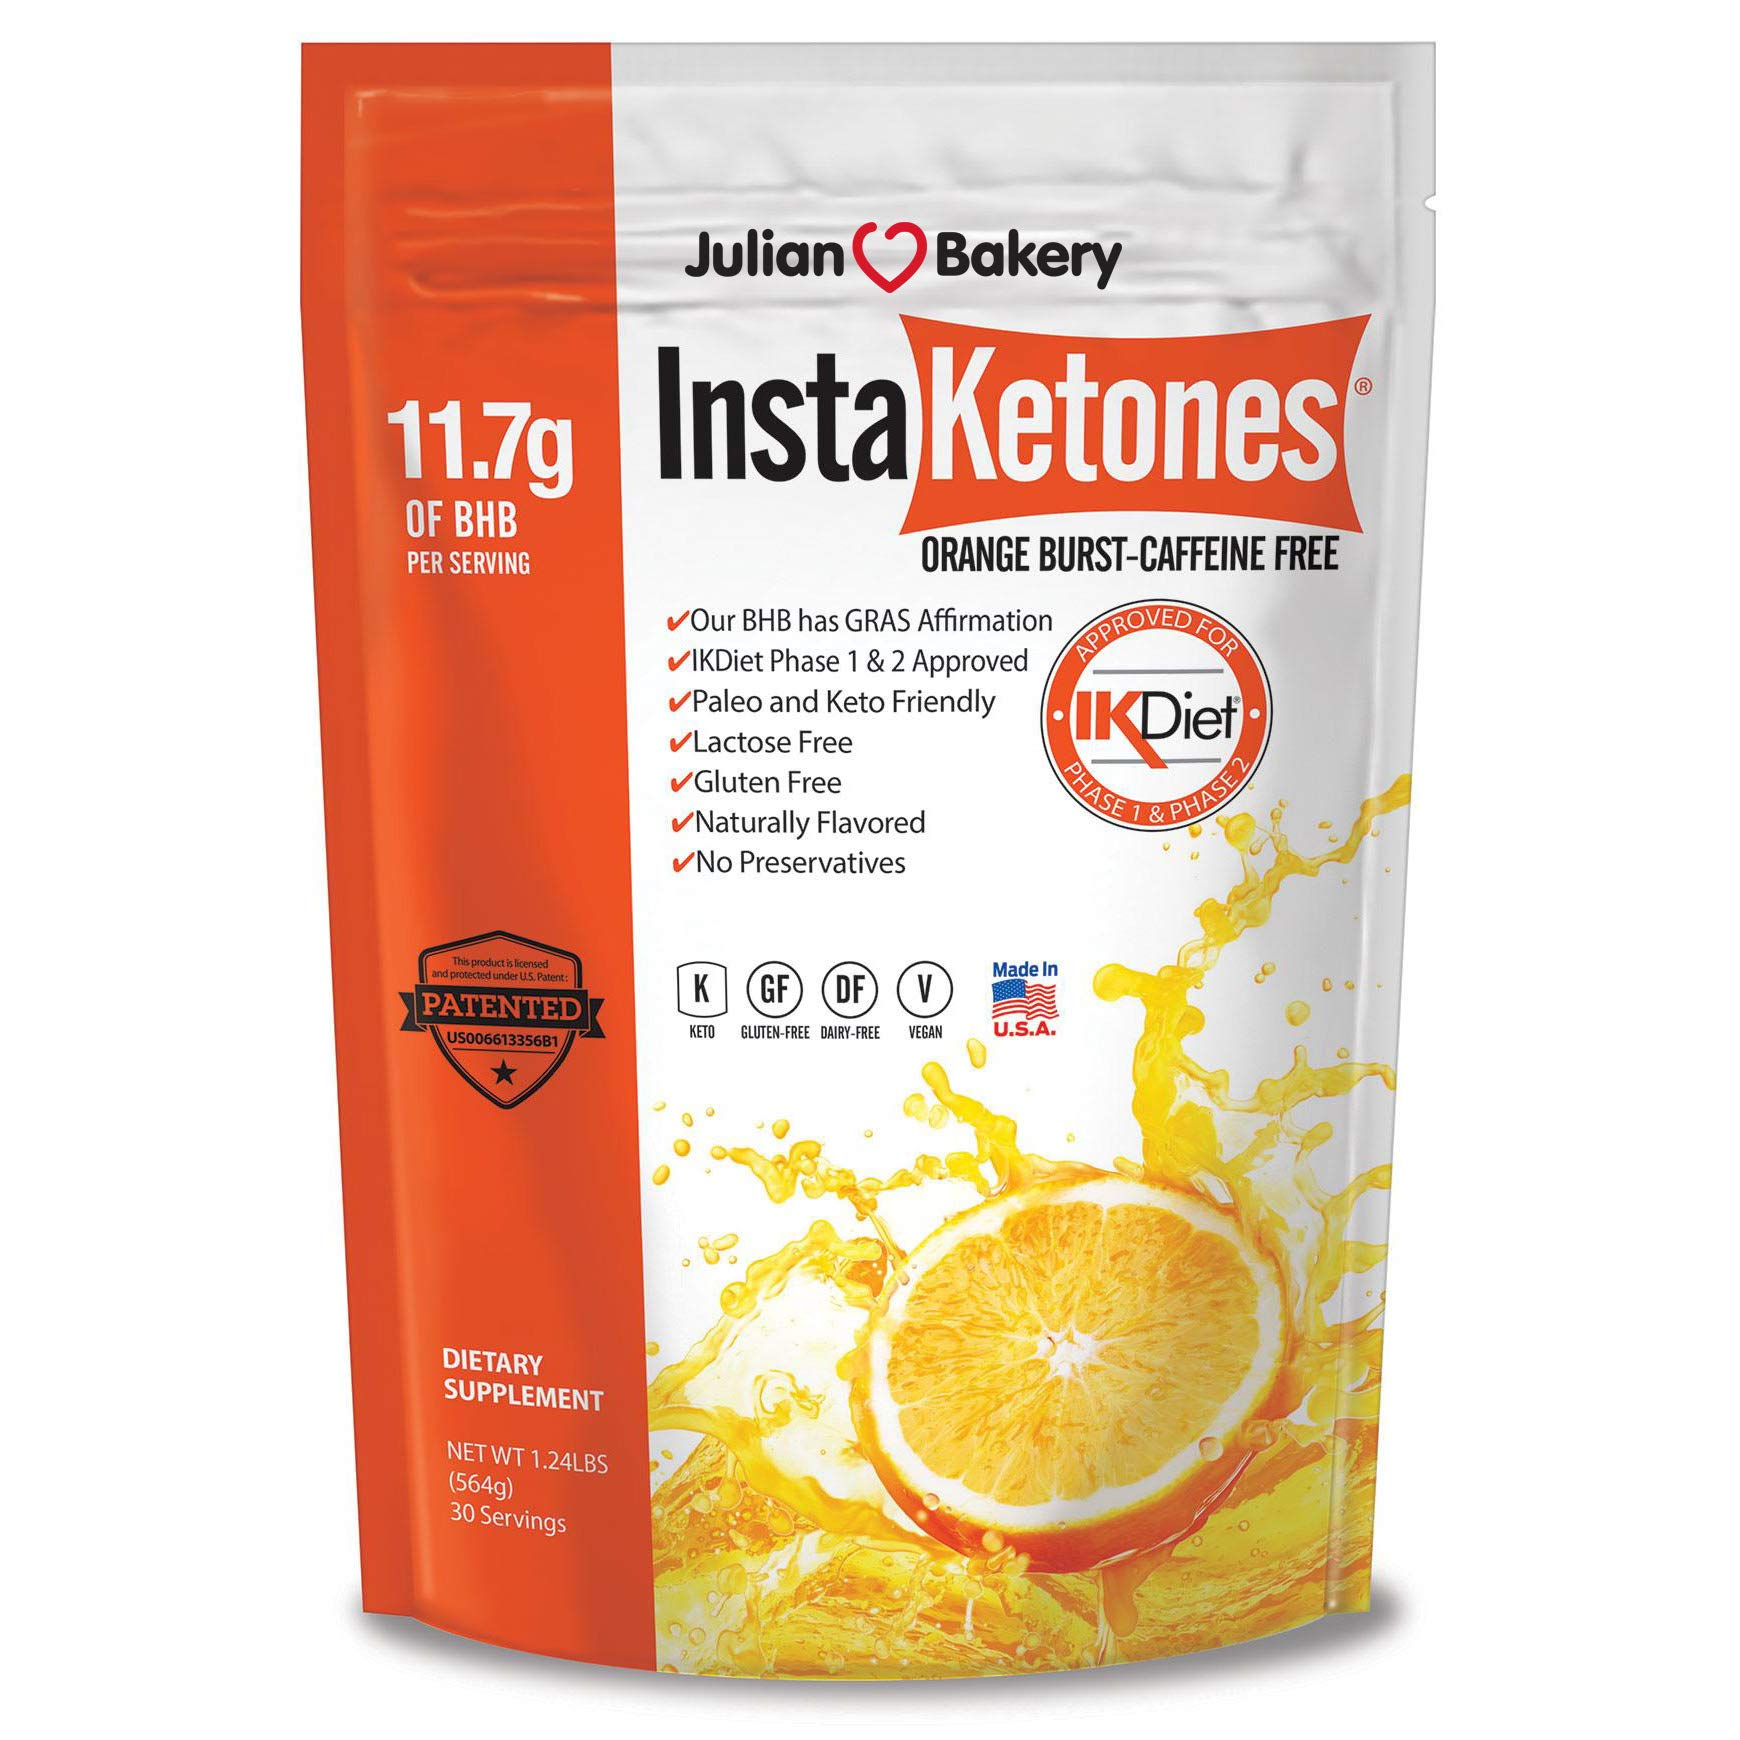 InstaKetones Orange Burst 11.7g GoBHB Per Scoop (Caffeine Free) (30 Servings) Exogenous Ketones 1.24 lbs